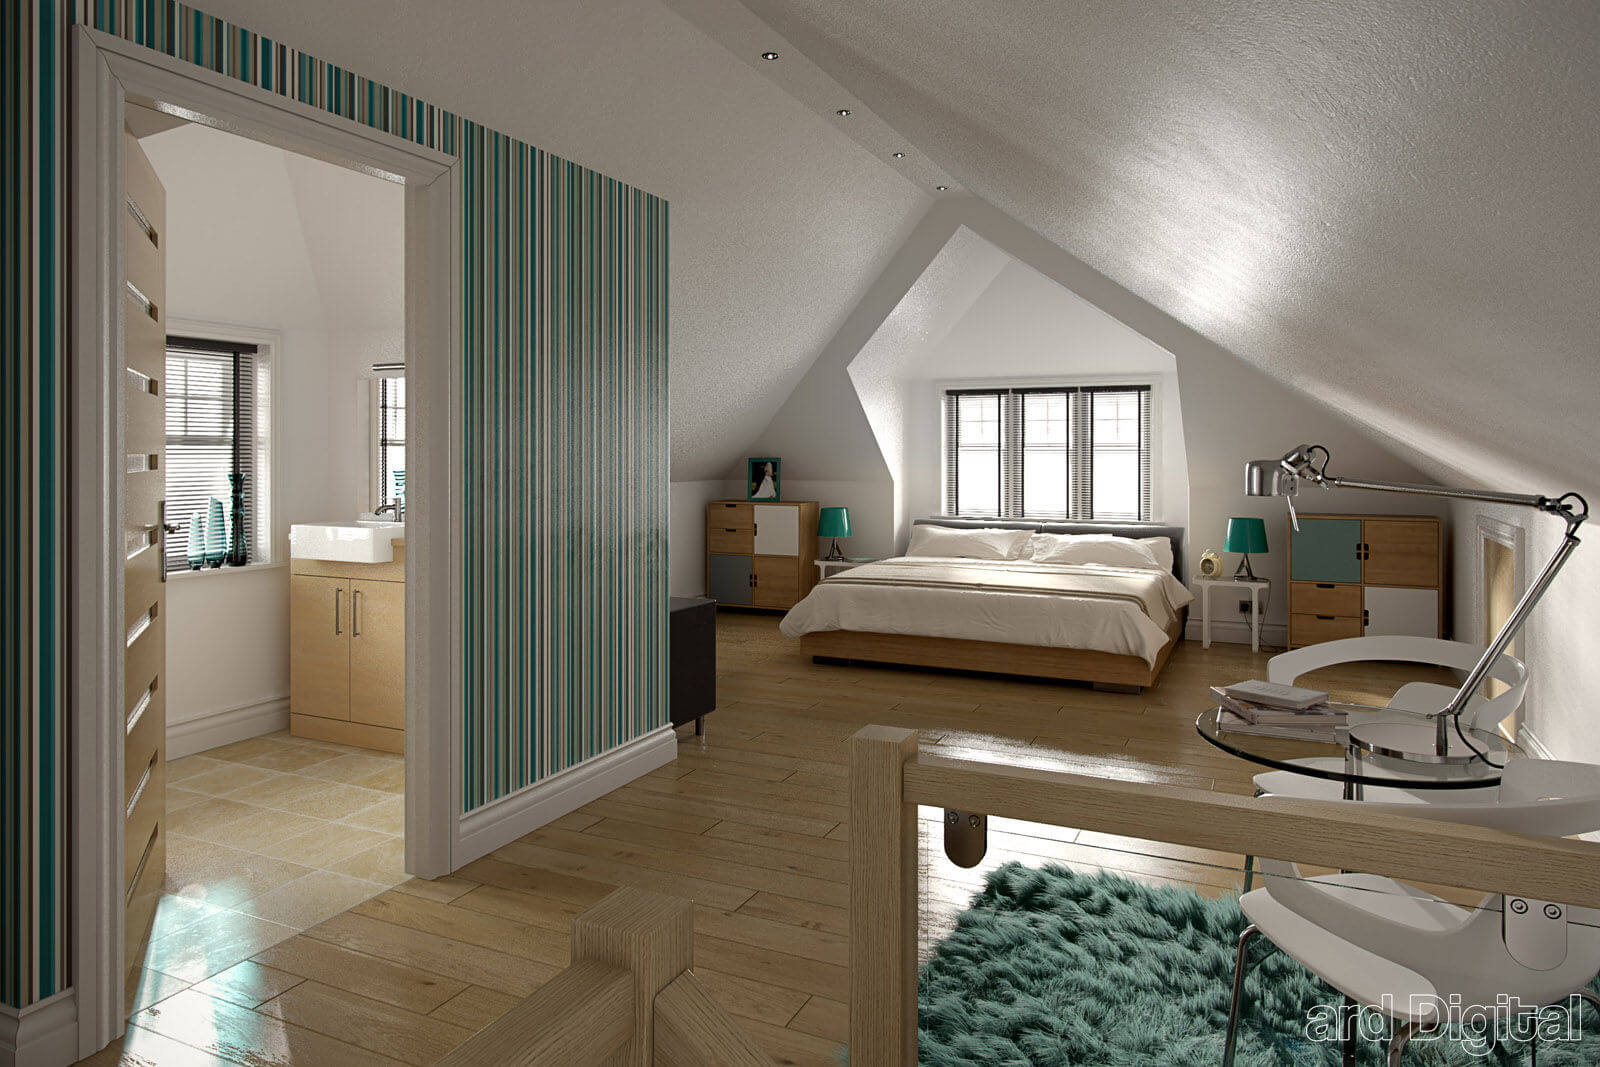 Interior_Loft_Conversion_1600